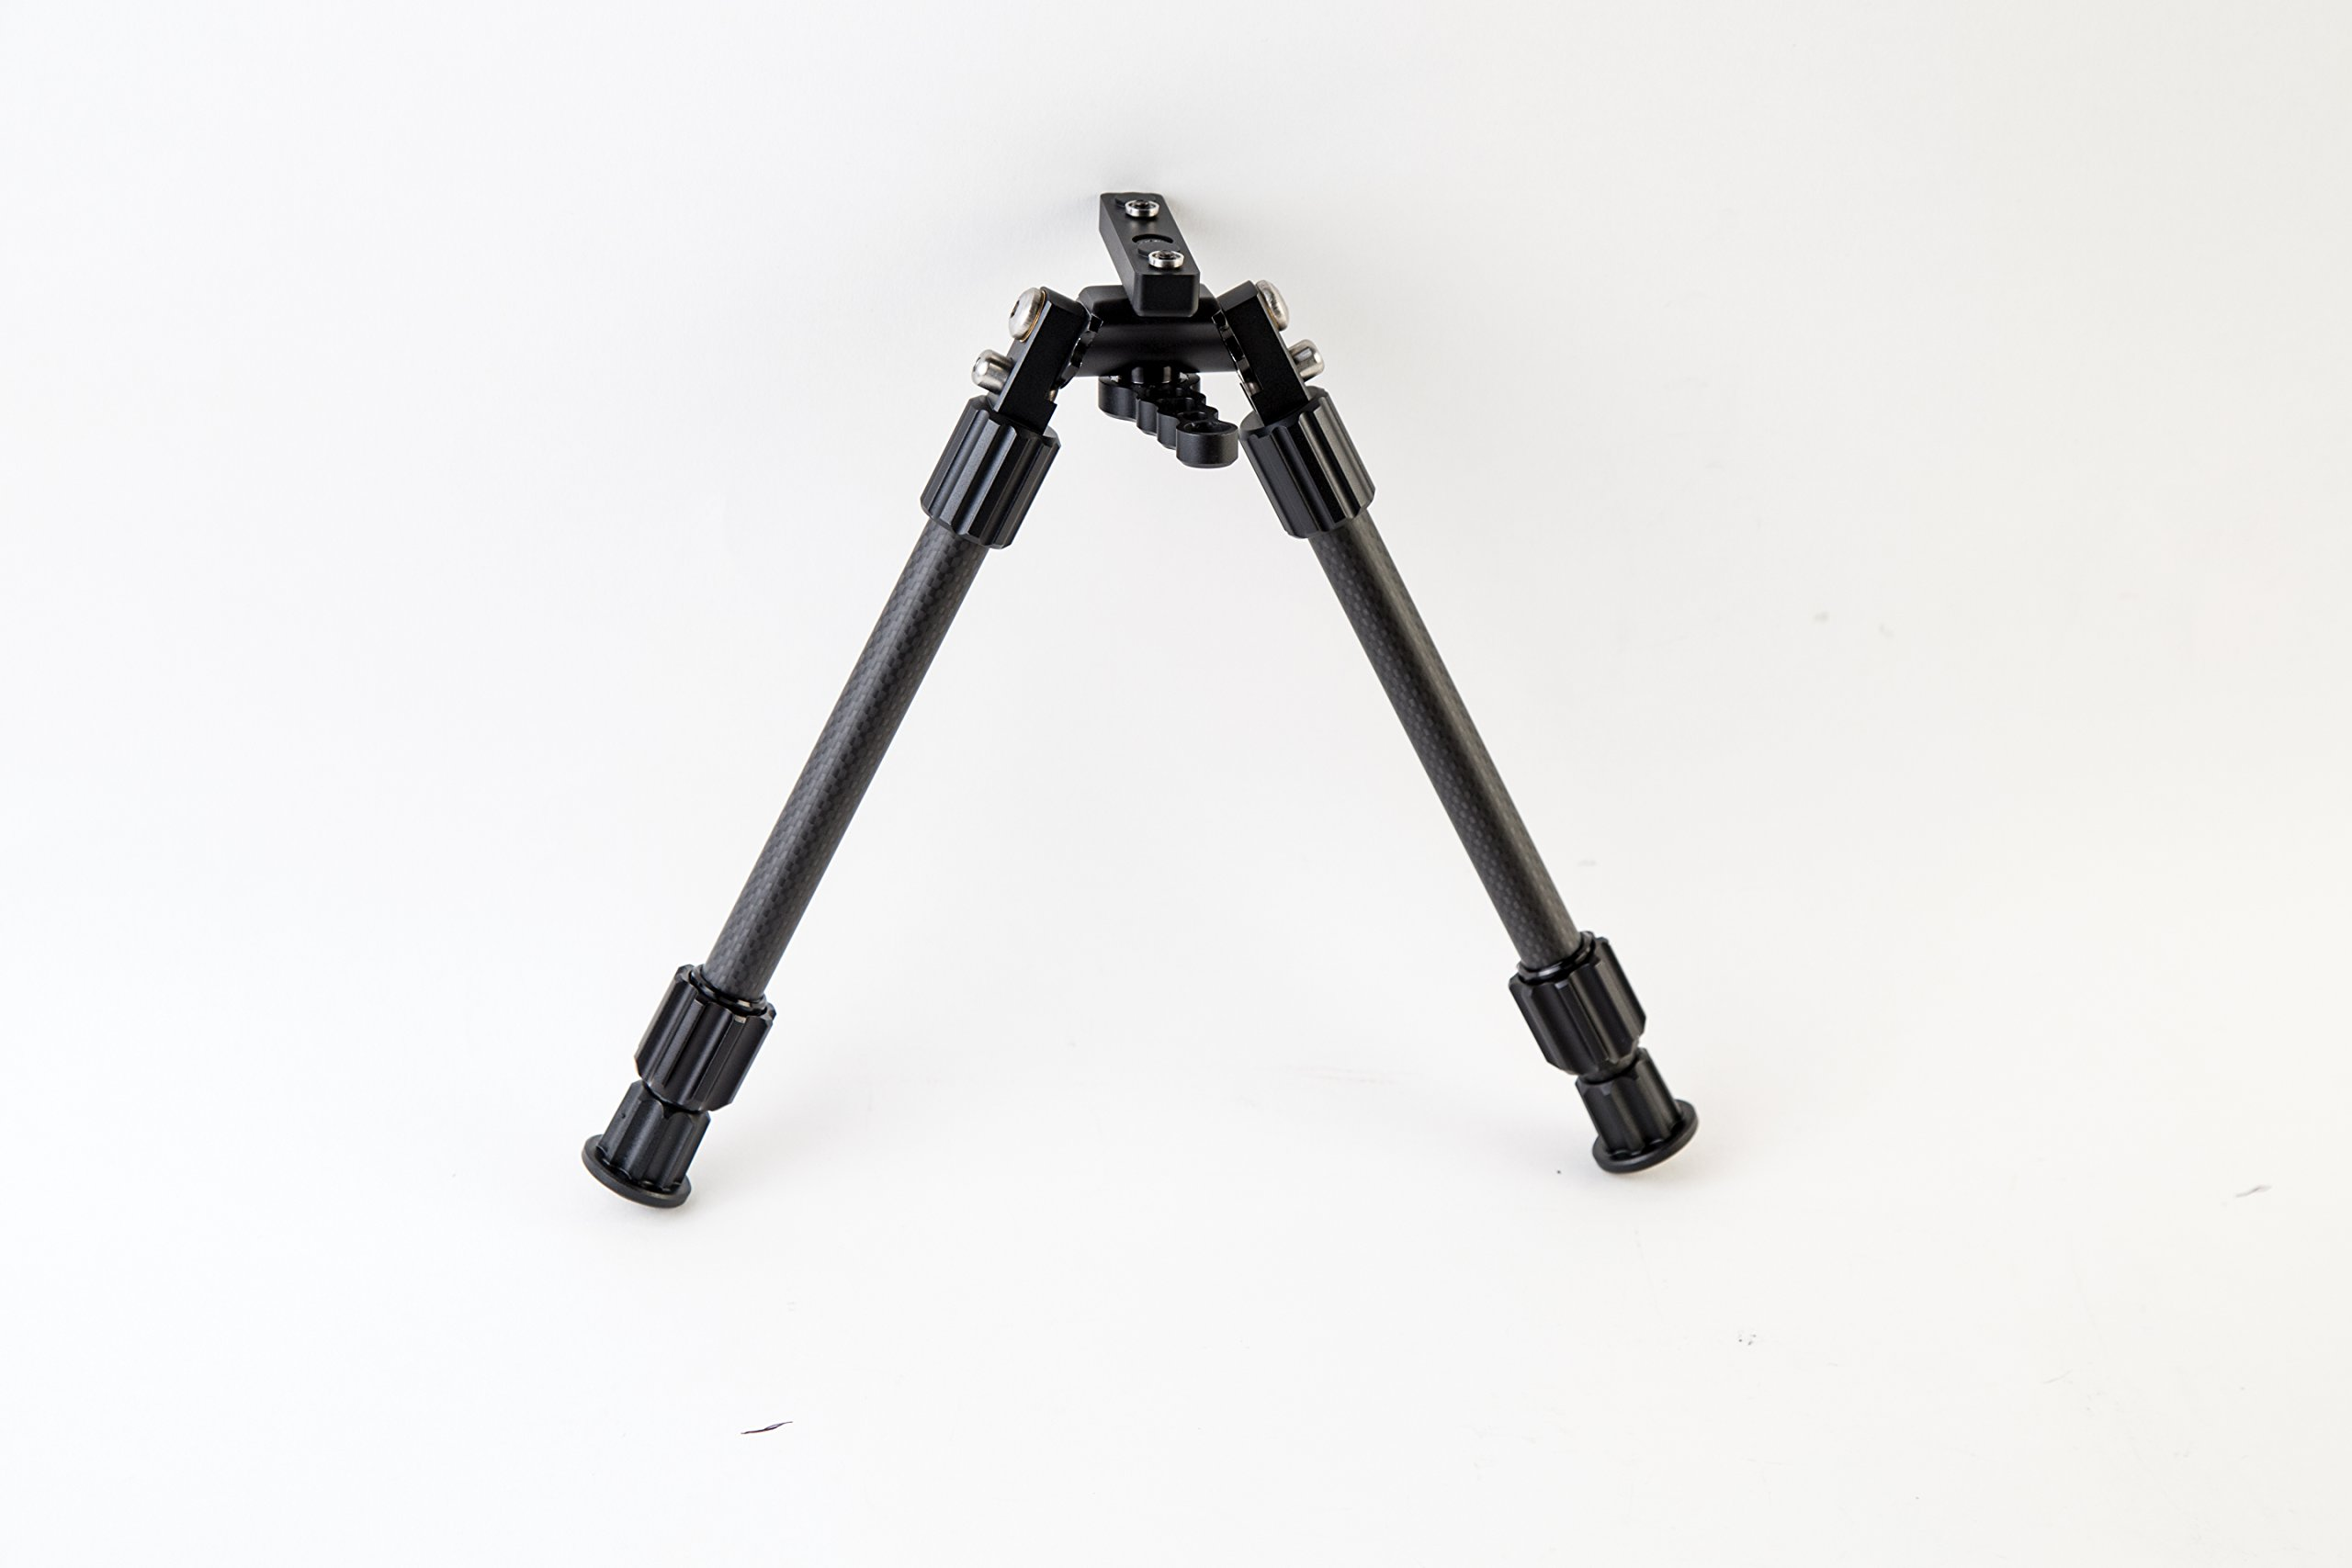 Caldwell Accumax M-Lok KeyMod 9-13 Inch Bipod with Twist Lock Quick-Deployment Legs for Mounting on Long Gun Rifle for Tactical Shooting Range and Sport